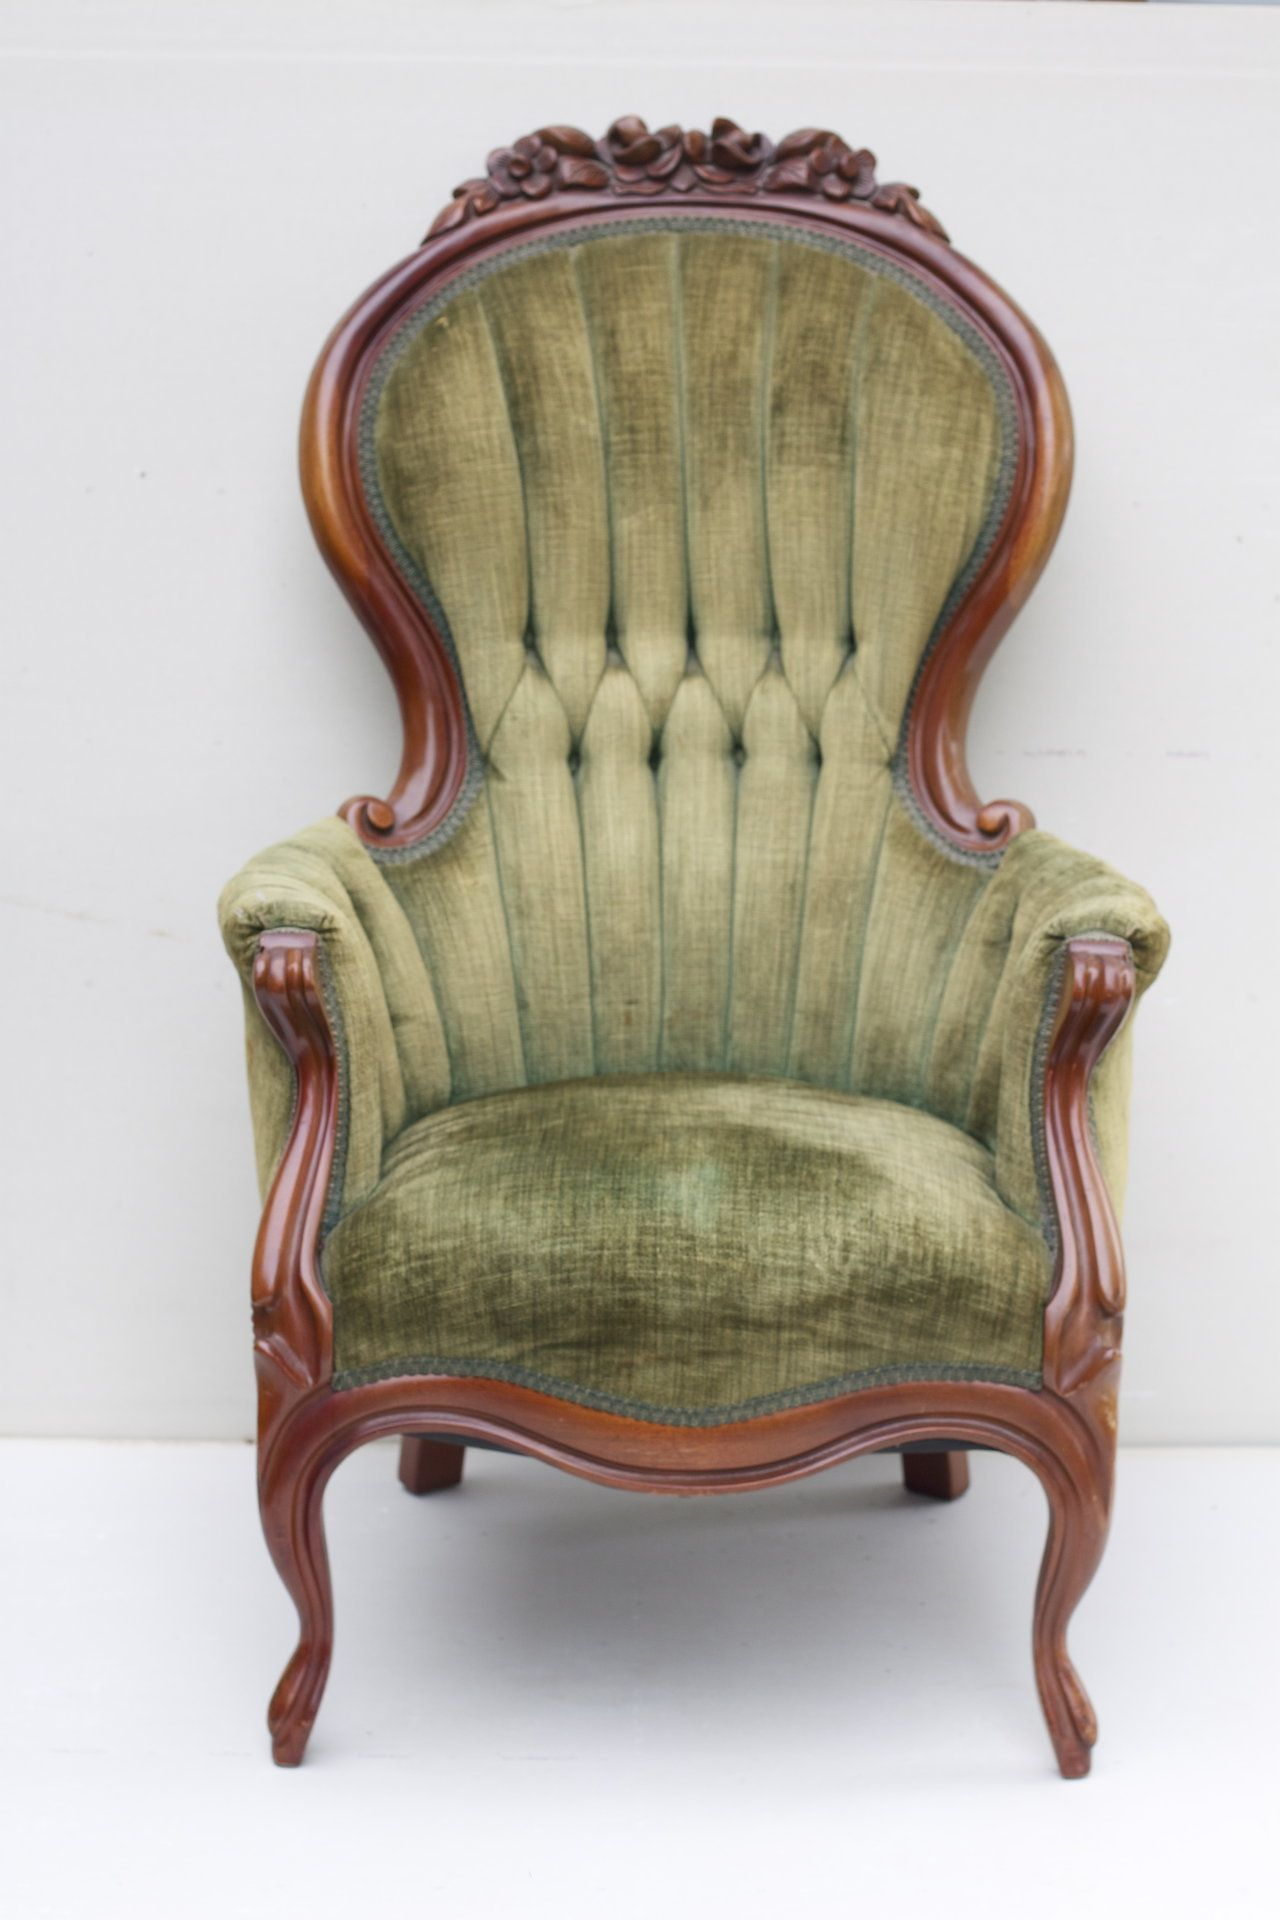 Antique Armchairs Design Storiestrending Com In 2020 High Back Dining Chairs Vintage Chairs Vintage Chair Green